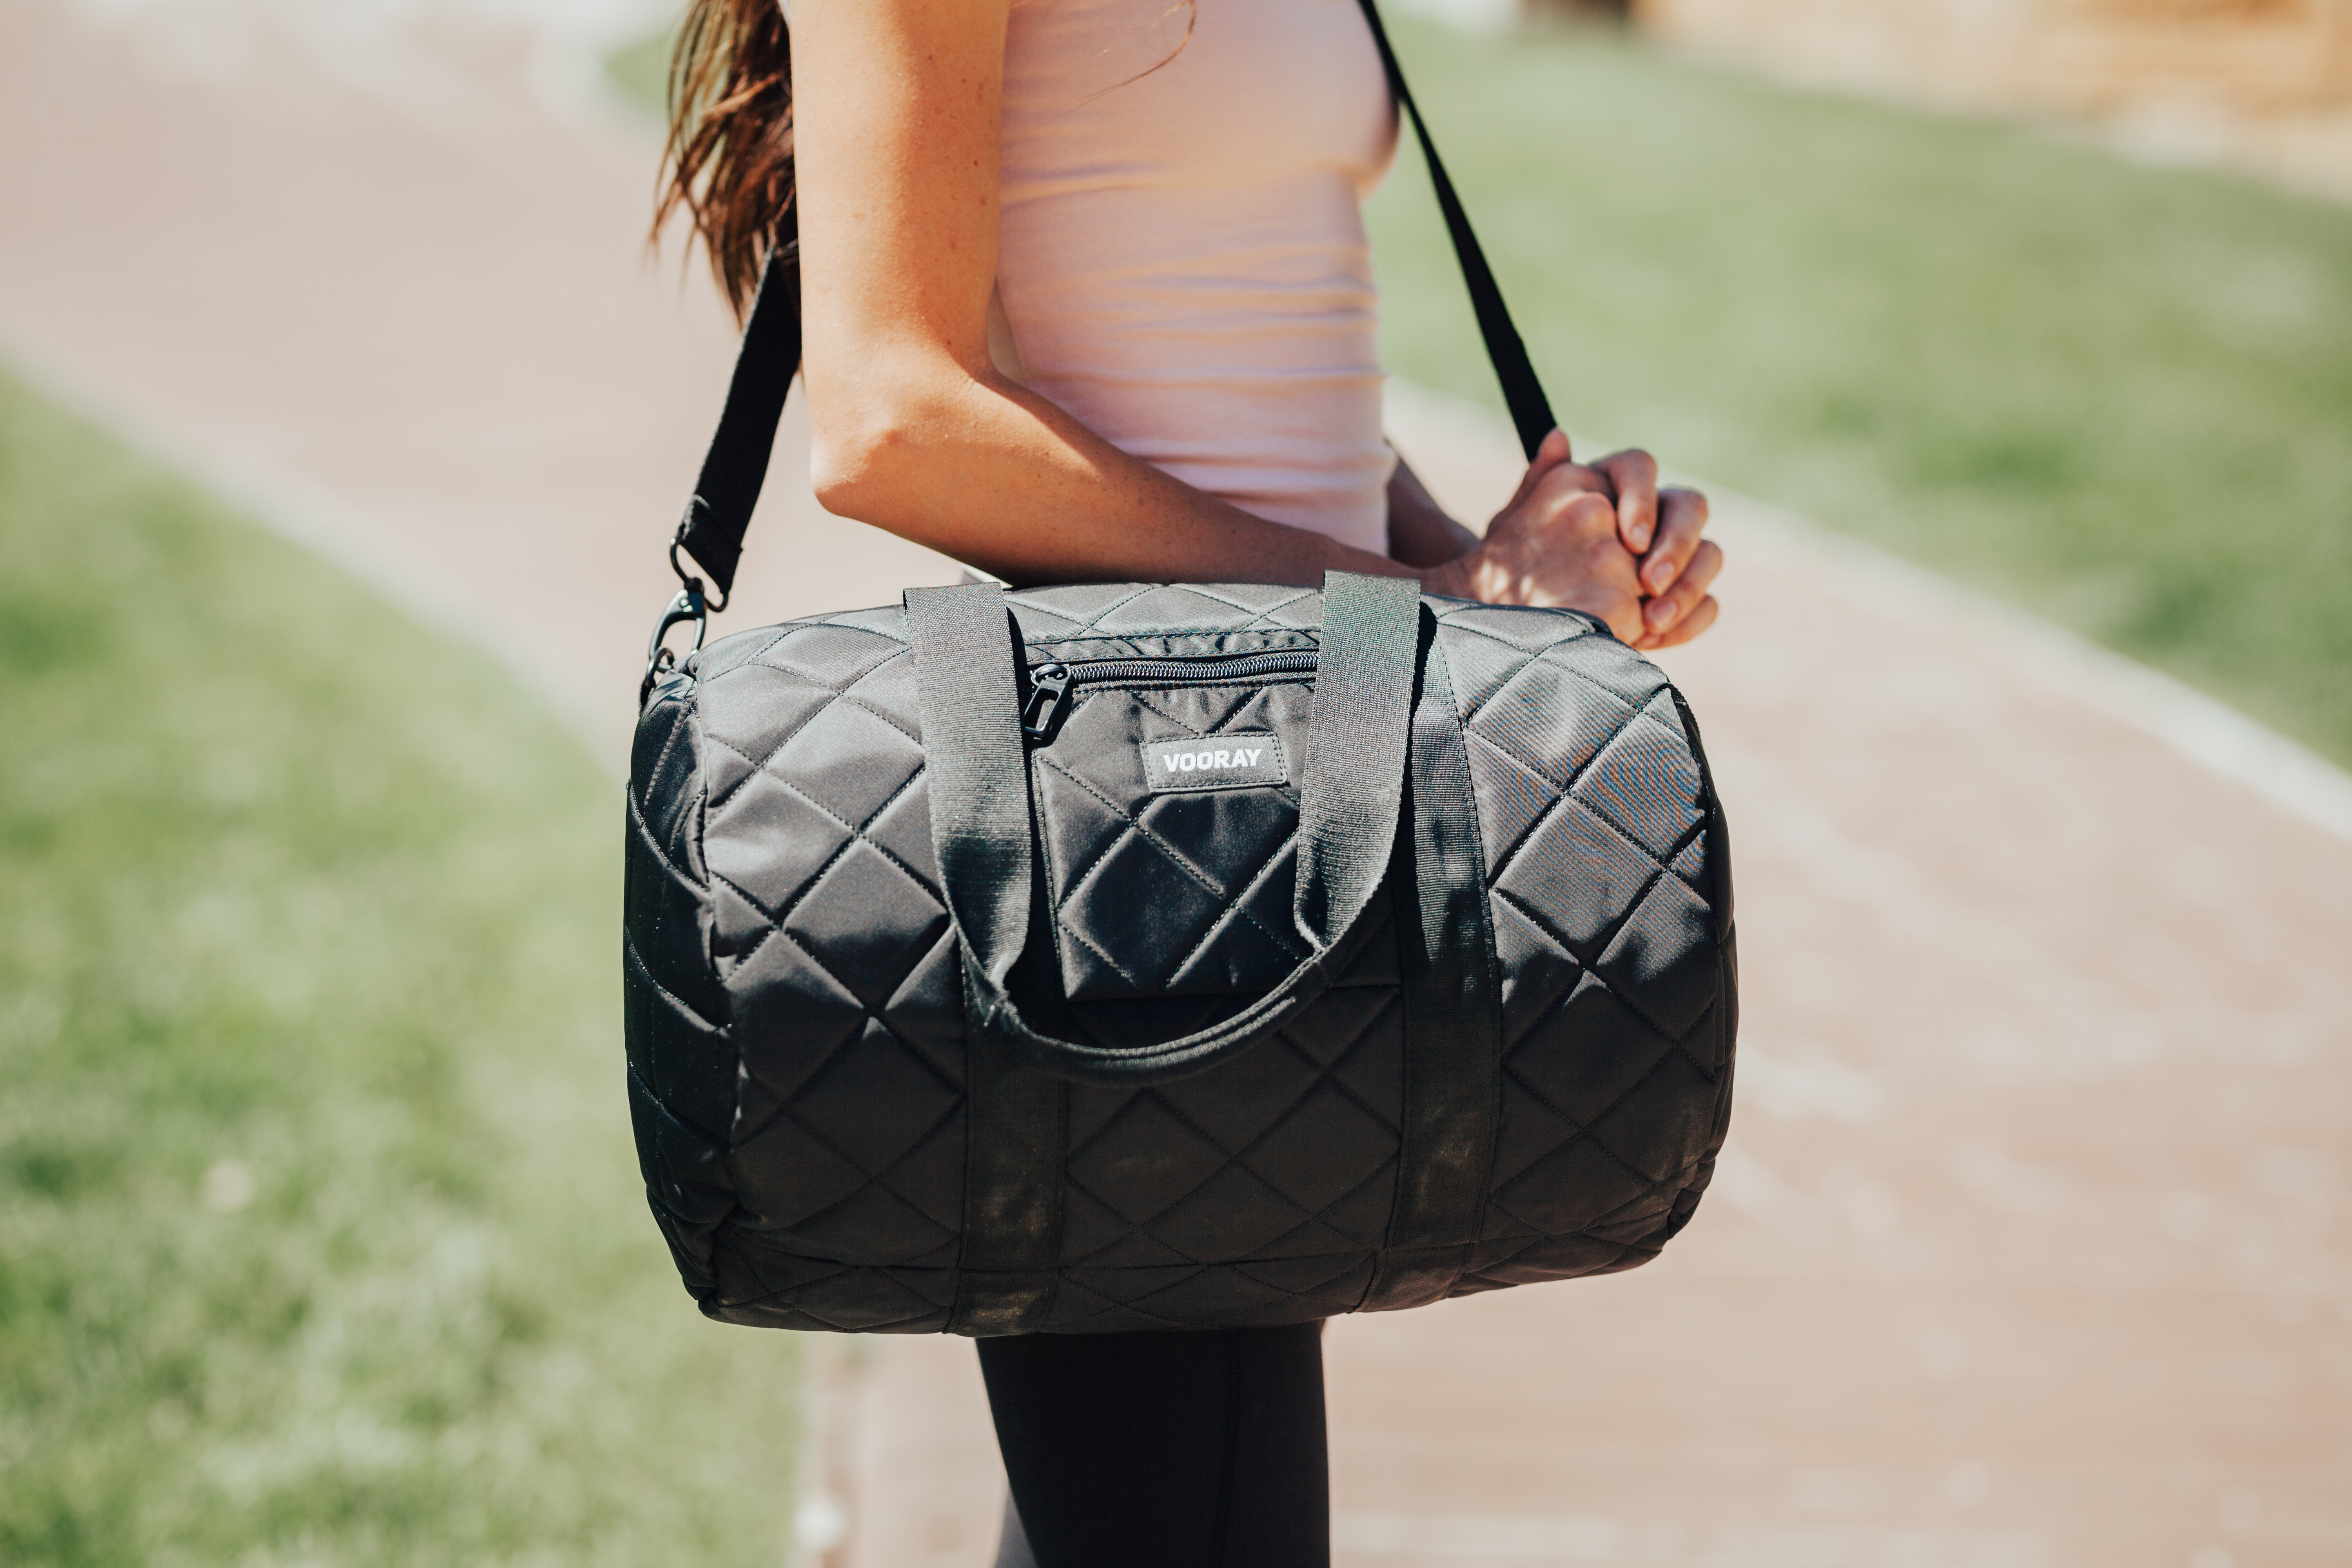 6847a7782660 Featuring 23L holding capacity this cutie has an adjustable shoulder strap